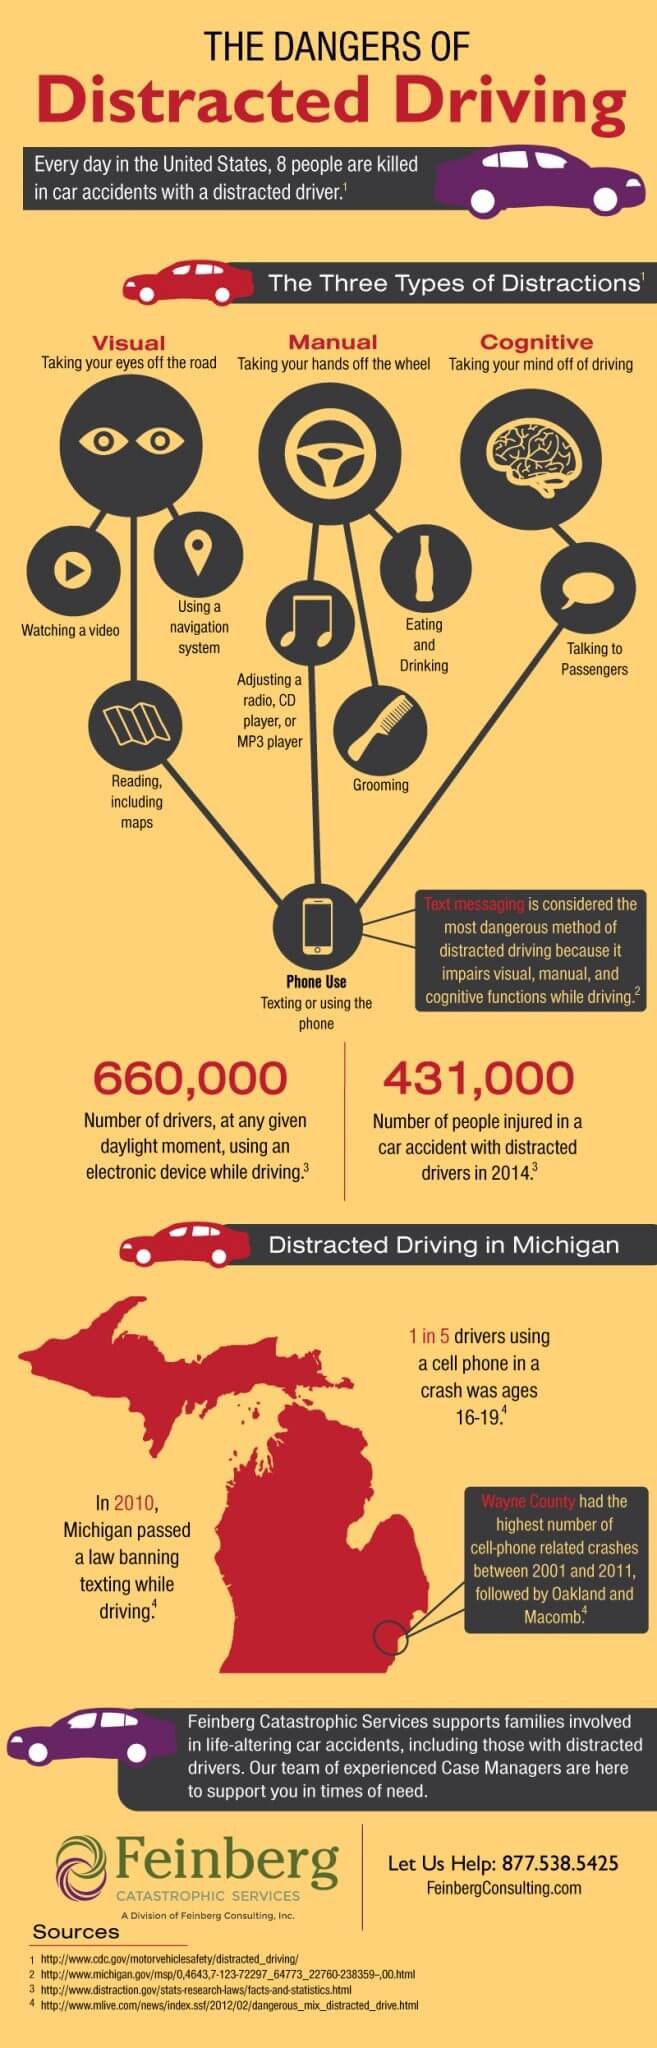 distracted driving statistics Ending distracted driving is everyone's responsibility thousands have died in crashes involving cell phone use many distractions exist while driving, but cell phones are a top distraction.